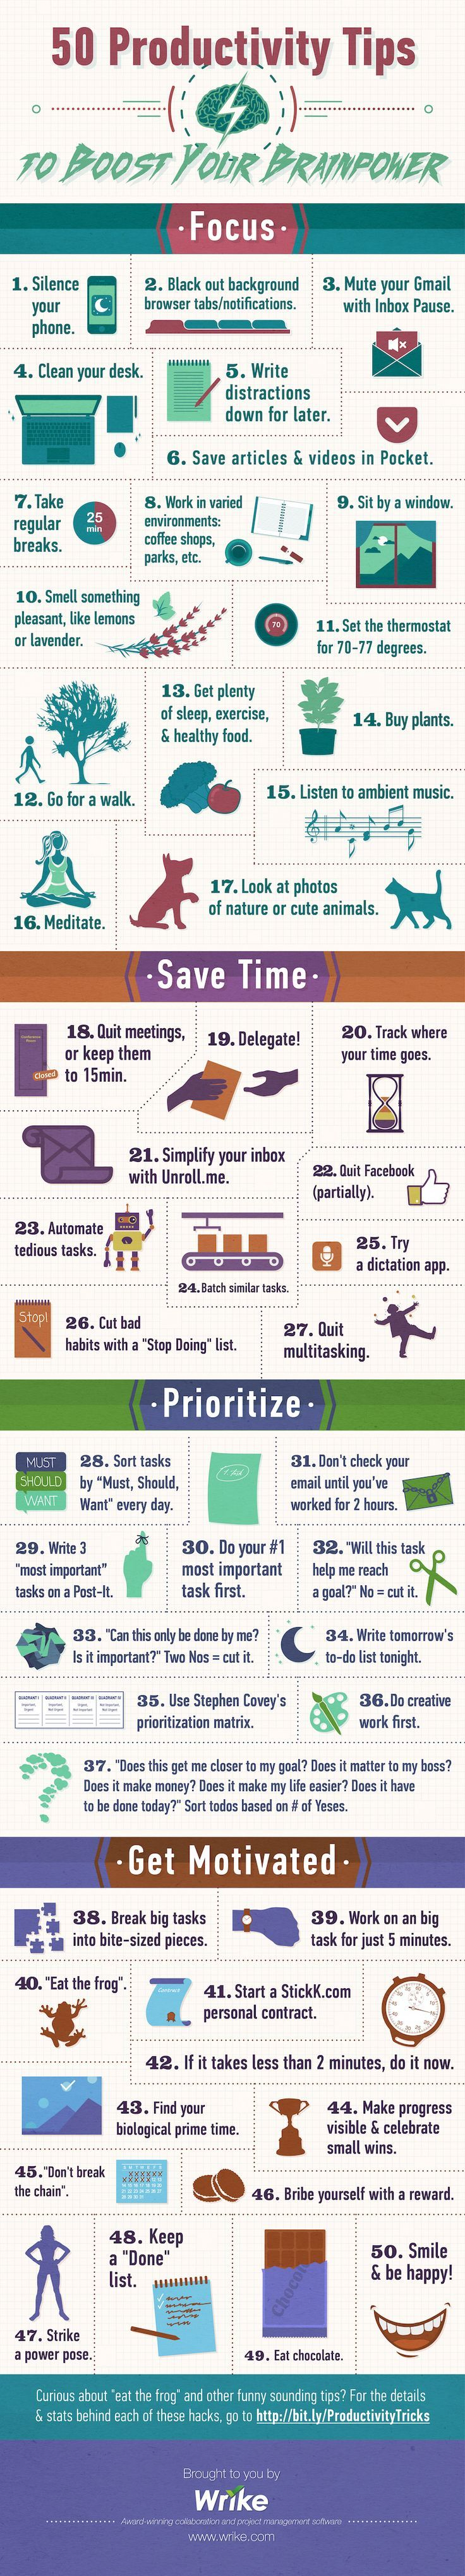 50 Productivity Tips to Boost Your Brainpower [by Wrike -- via Tipsographic] #tipsographic